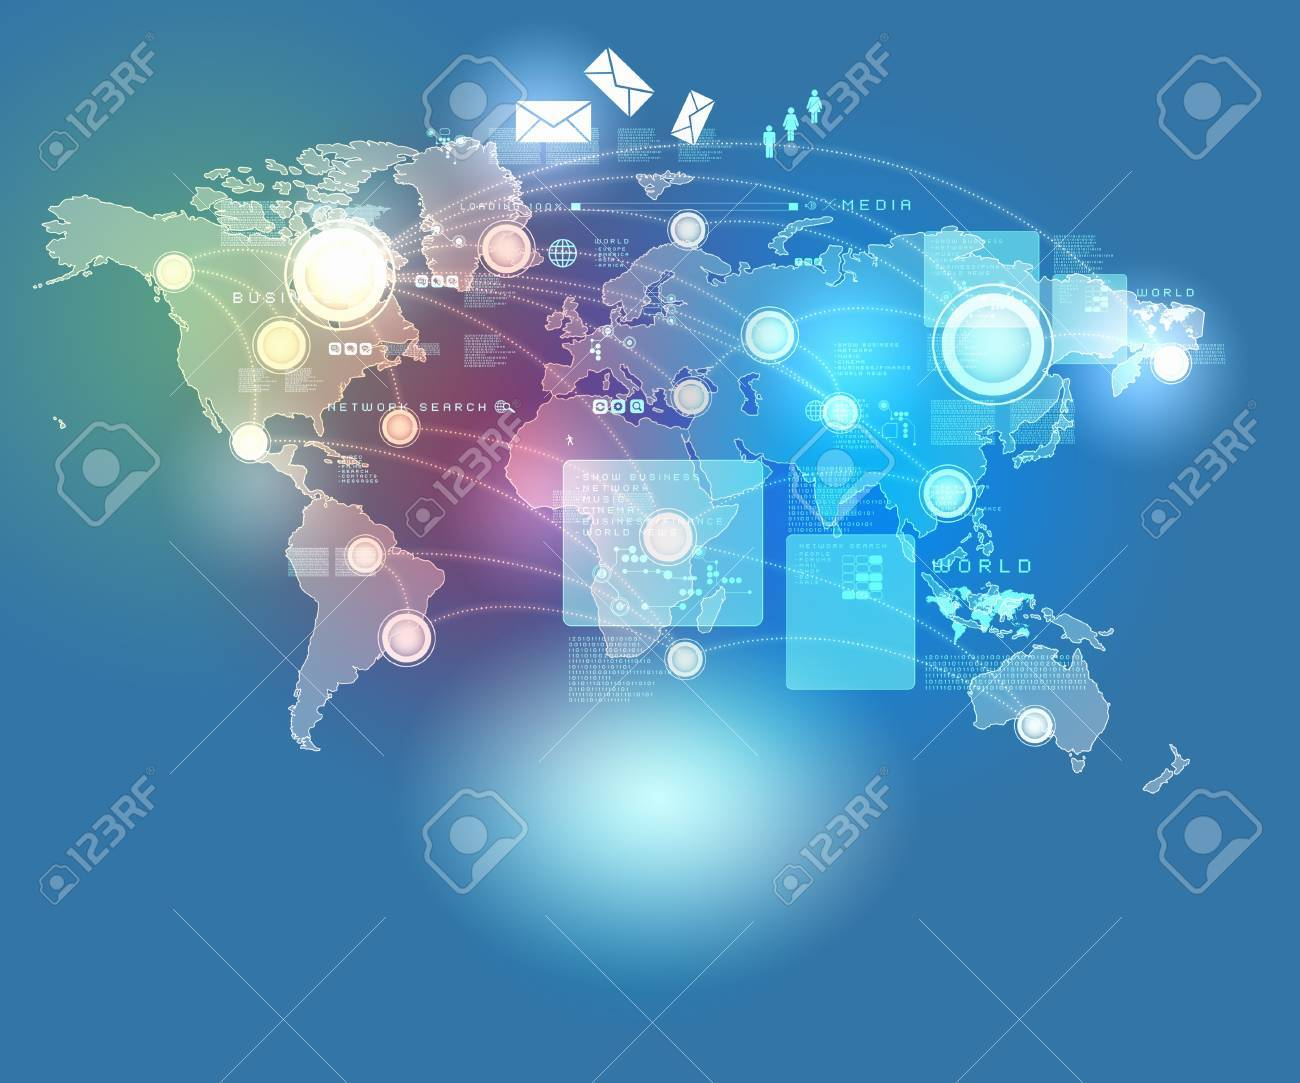 Internet technology concept of global business from concepts series - 16600350